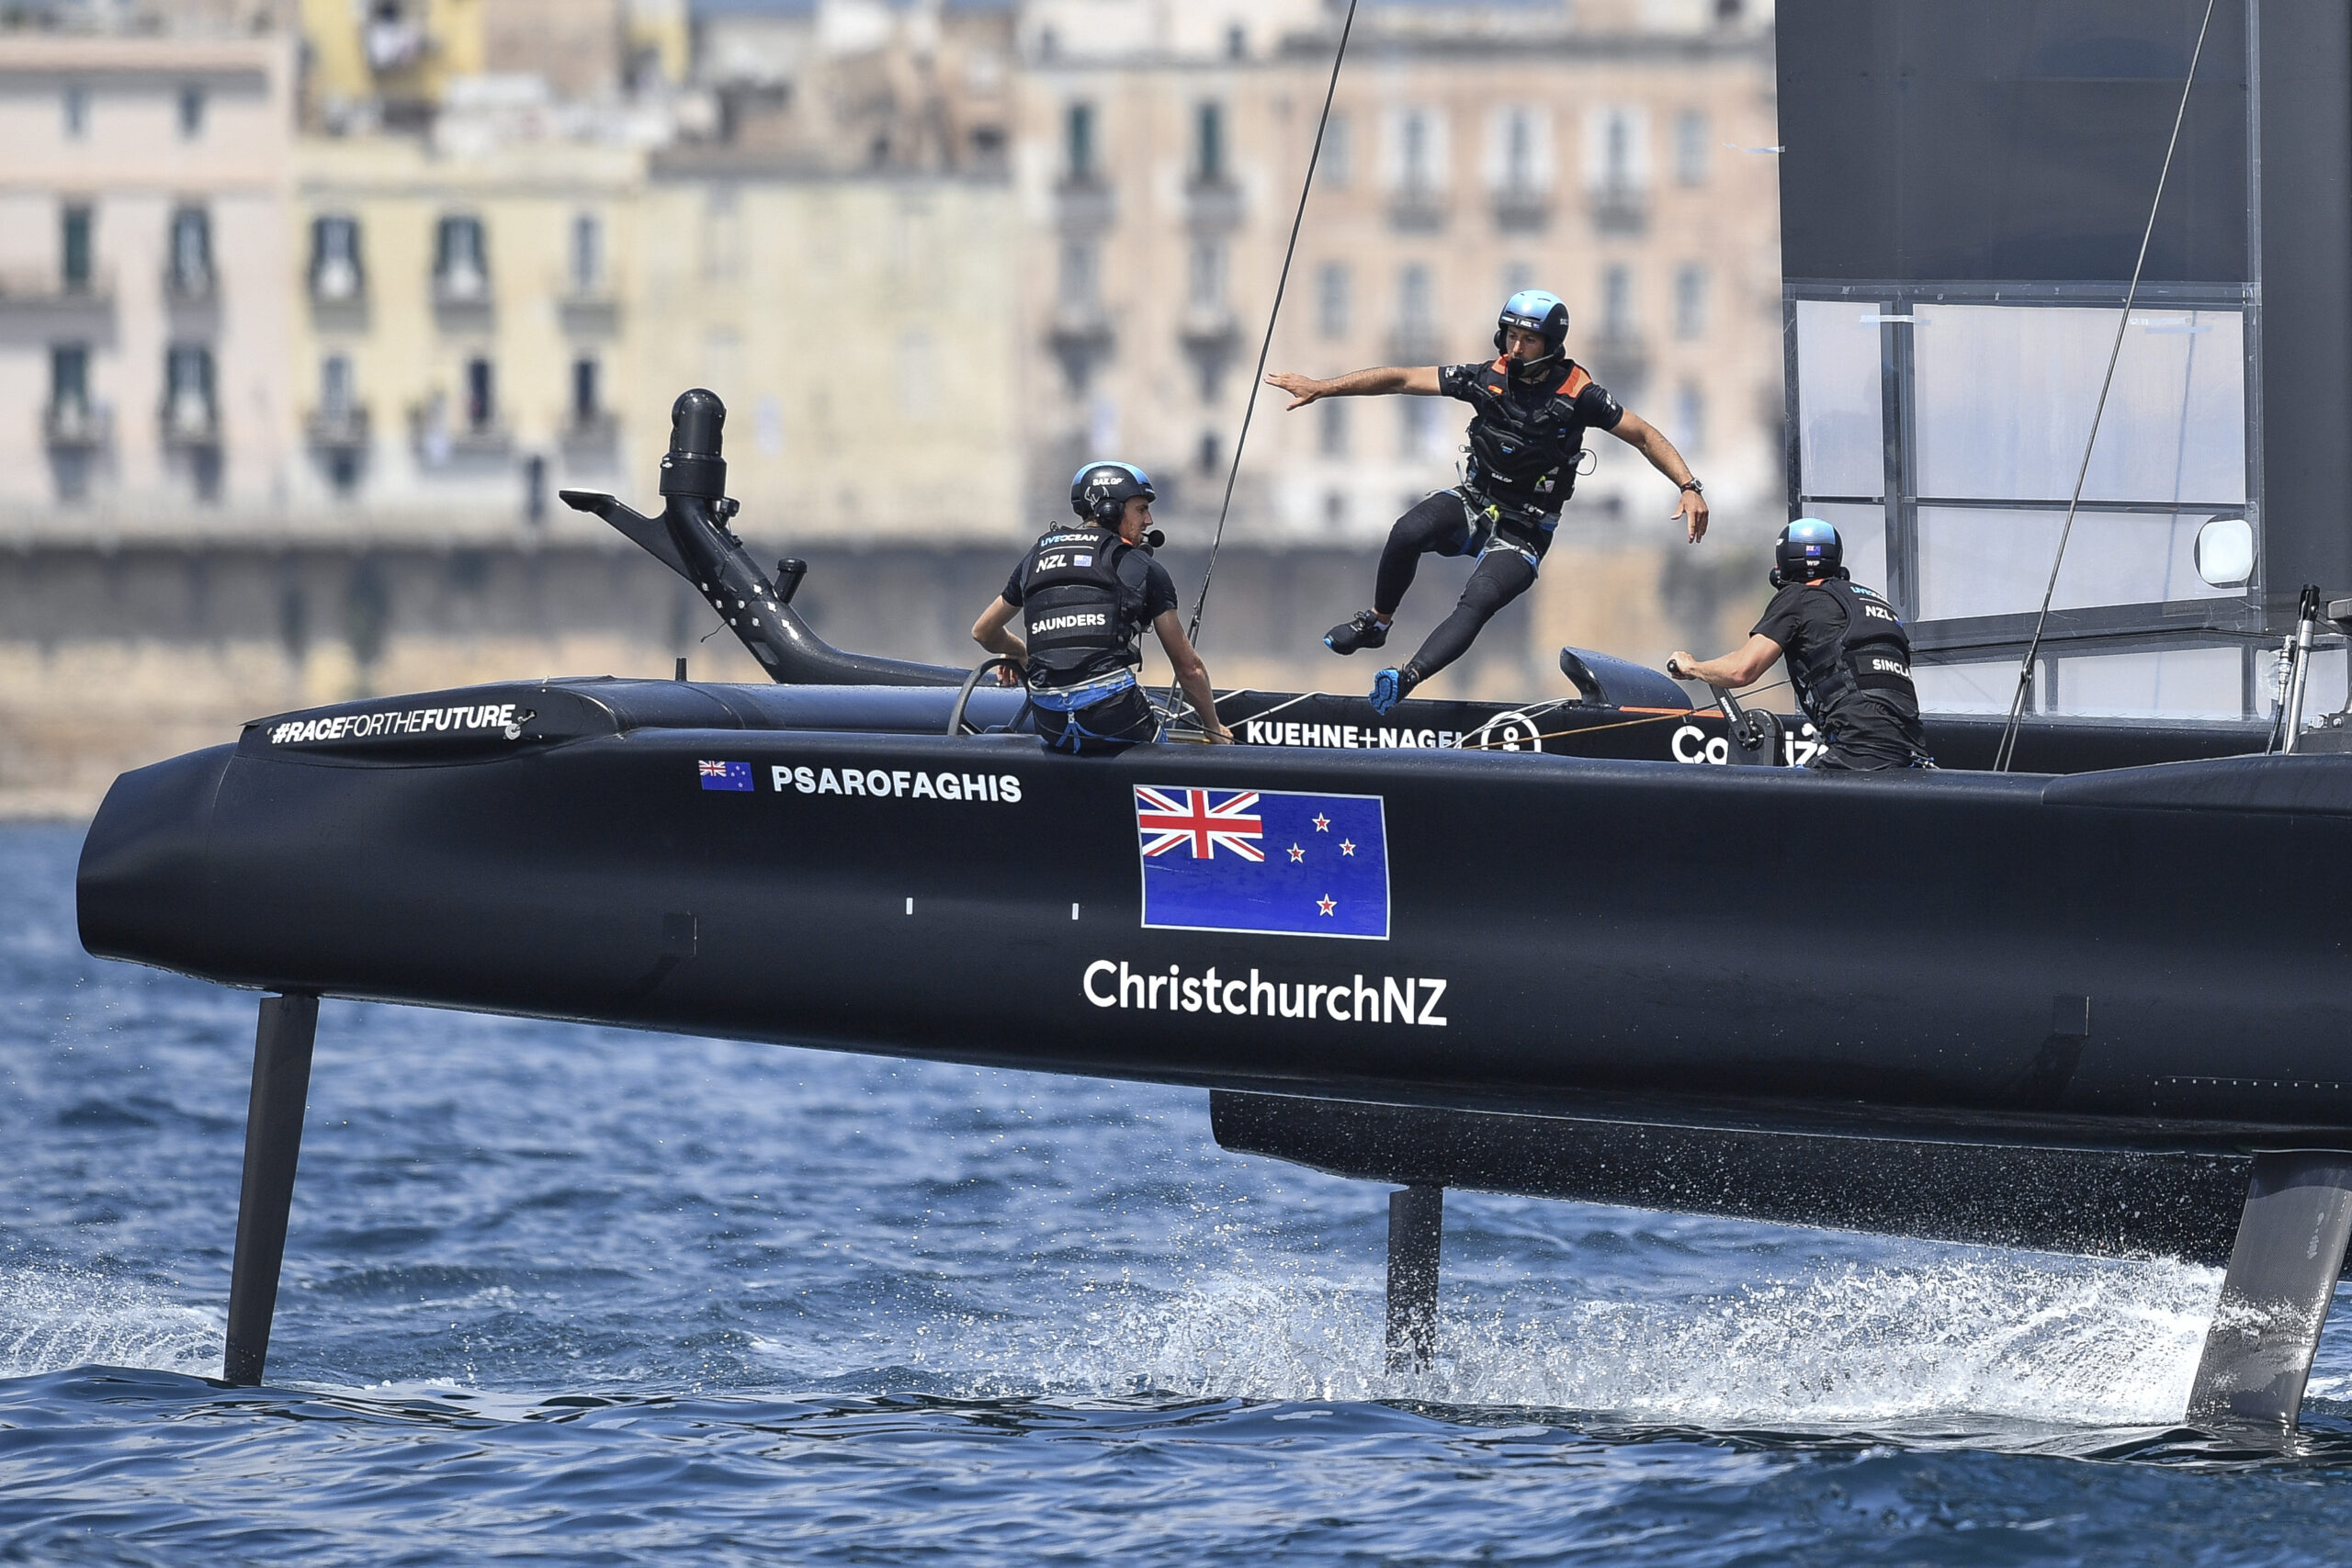 New Zealand SailGP Team helmed by interim skipper Arnaud Psarofaghis in action during racing on race day 2. Italy SailGP, Event 2, Season 2 in Taranto, Italy. 06 June 2021. Photo: Ricardo Pinto for SailGP. Handout image supplied by SailGP